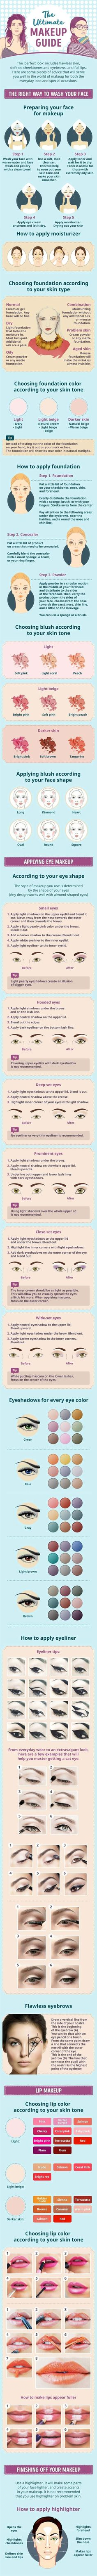 Best Makeup Tutorials for Teens -The Ultimate Makeup Guide You Can't Live Without - Easy Makeup Ideas for Beginners - Step by Step Tutorials for Foundation, Eye Shadow, Lipstick, Cheeks, Contour, Eyebrows and Eyes - Awesome Makeup Hacks and Tips for Simpl